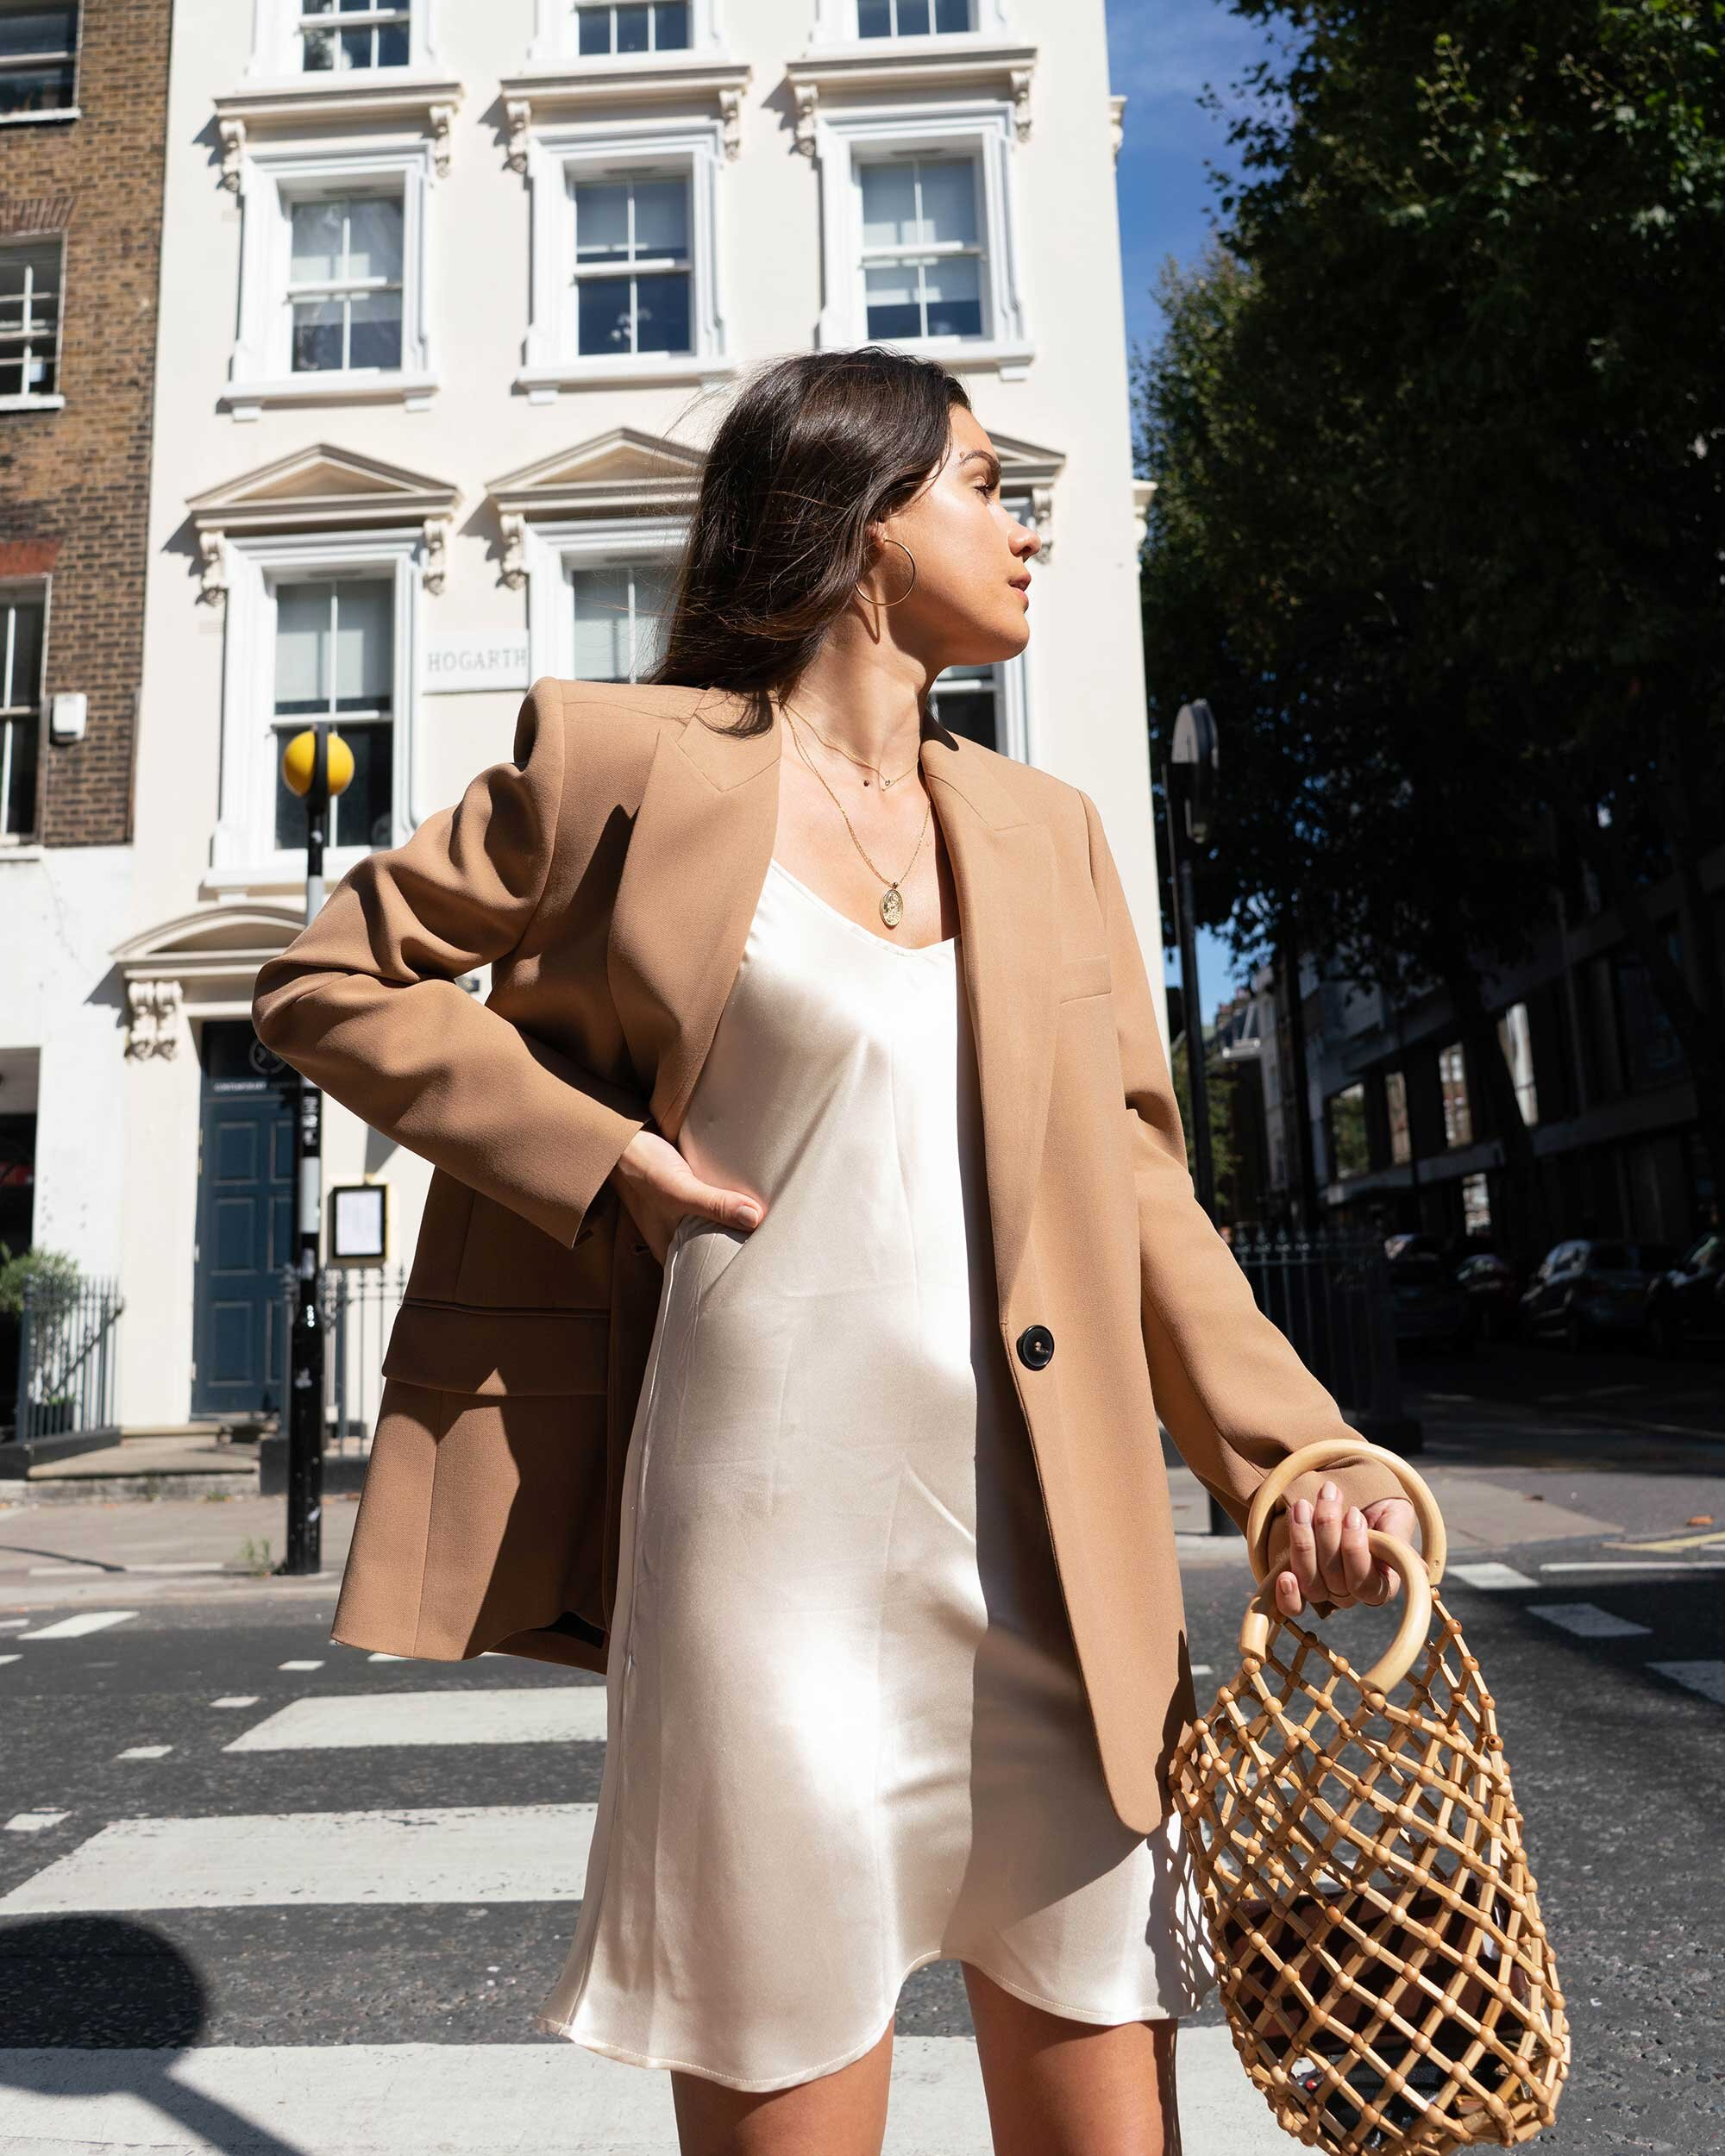 Sarah Butler of Sarah Styles Seattle wears ivory Slip dress and tan blazer in London | @sarahchristine -9.jpg